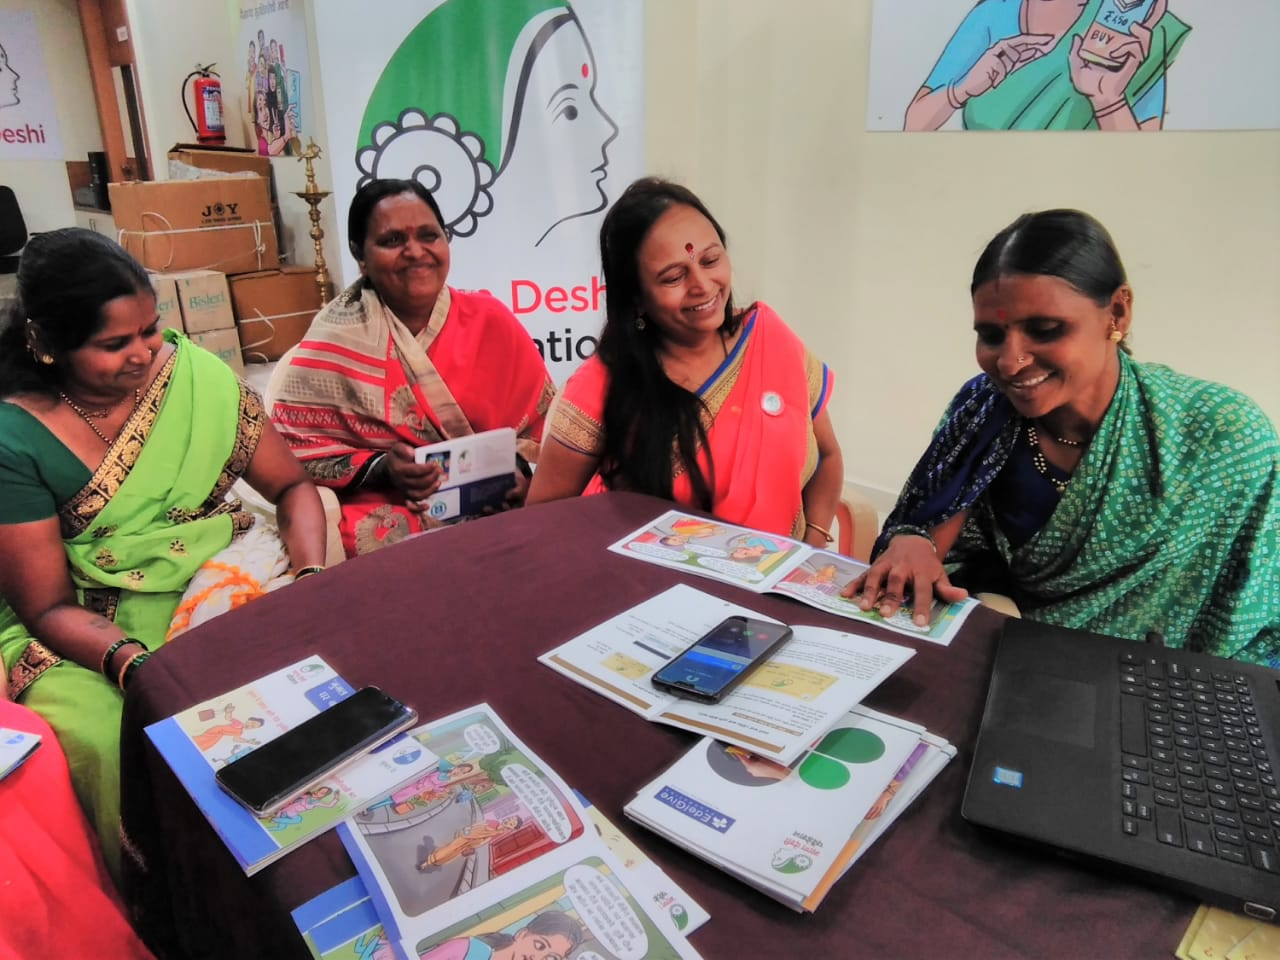 Village women show the light on creating a digital revolution - TheLeaflet